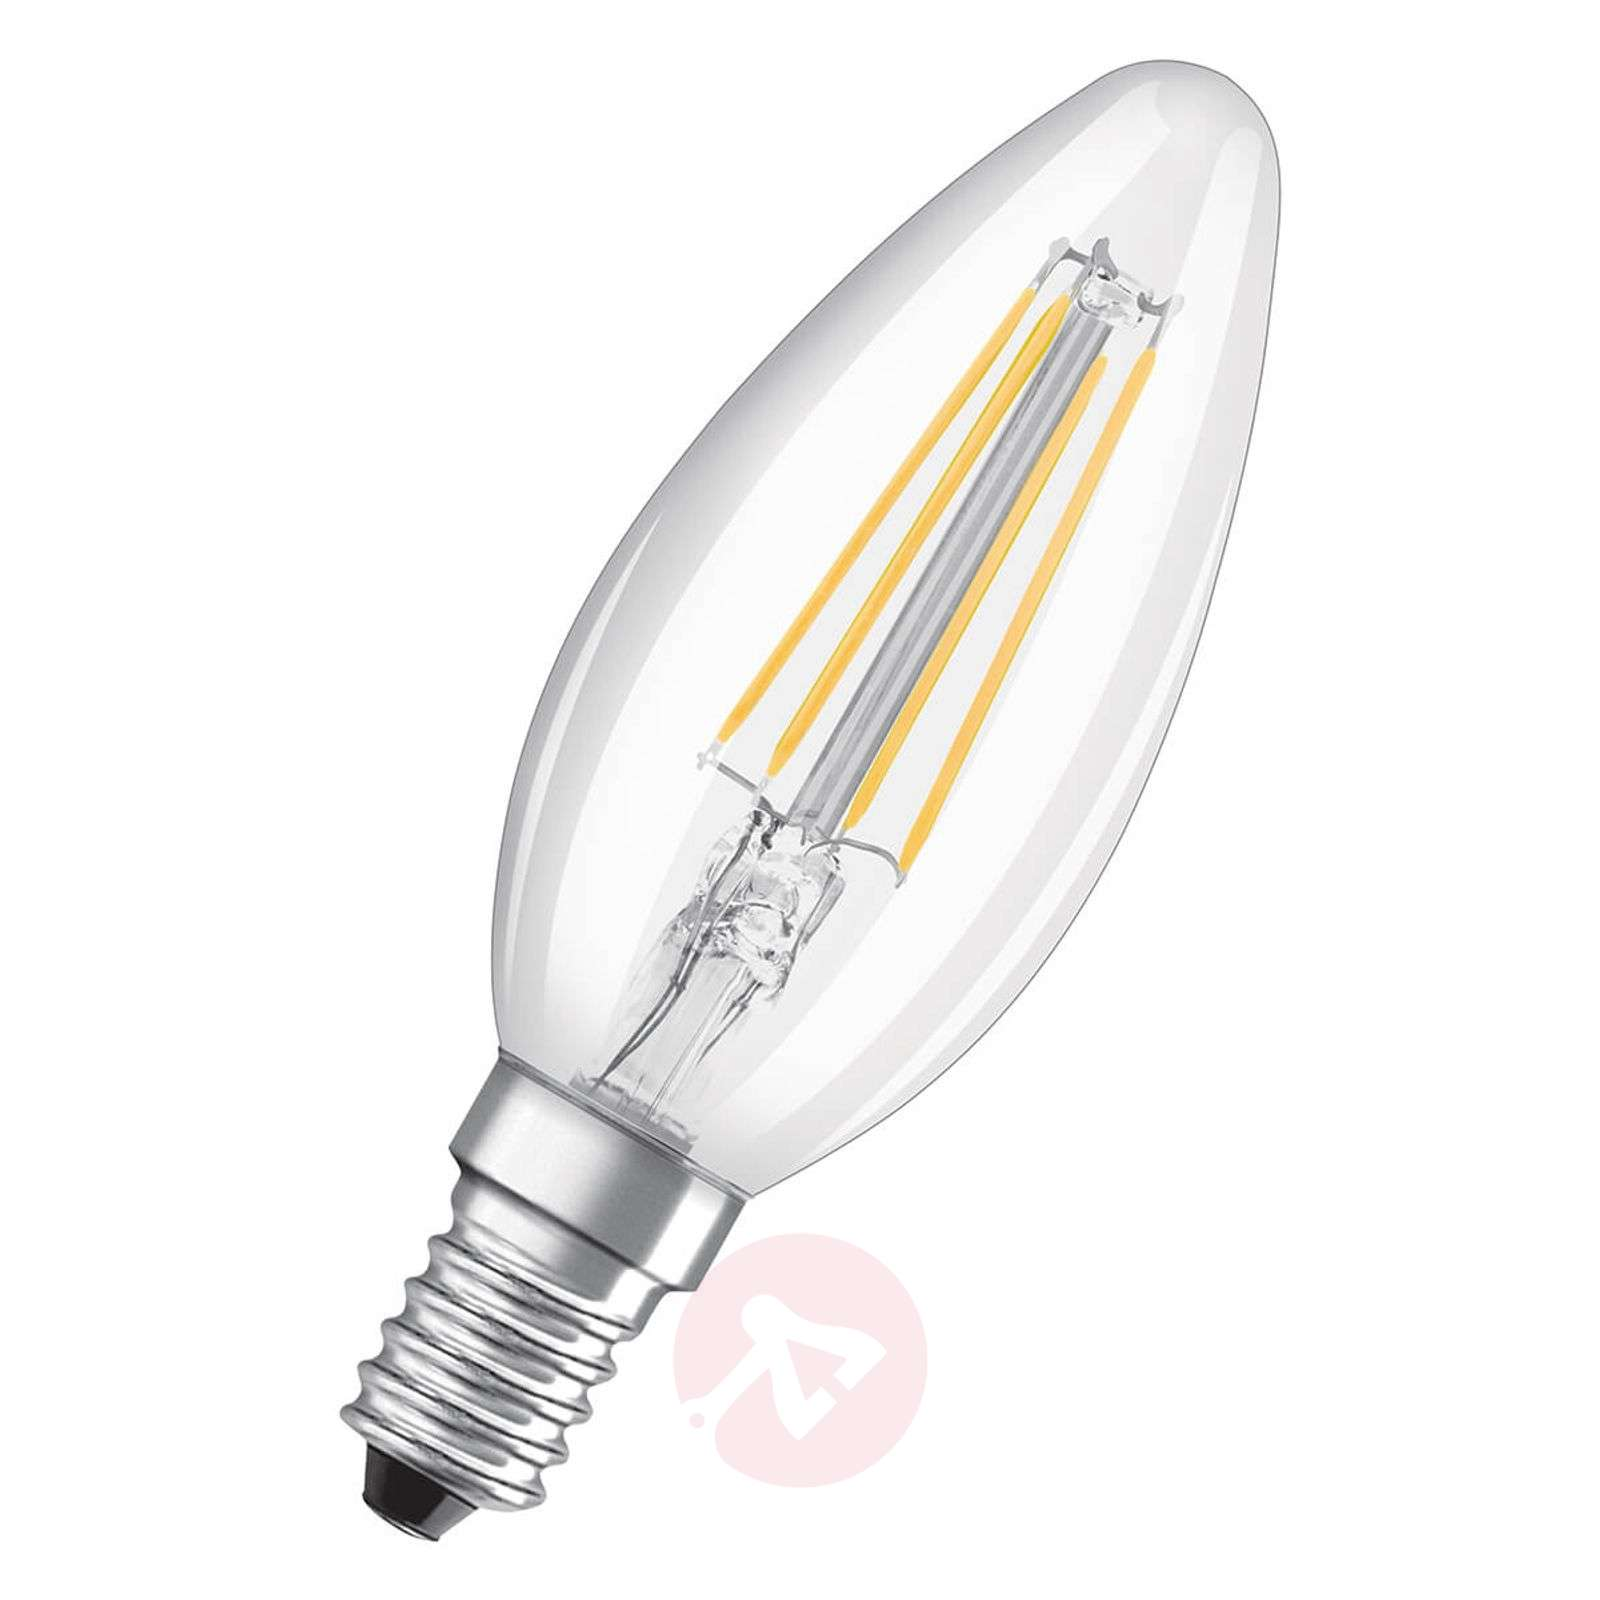 Ampoule filament LED E14 4W, blanc chaud, kit de 3-7262098-01